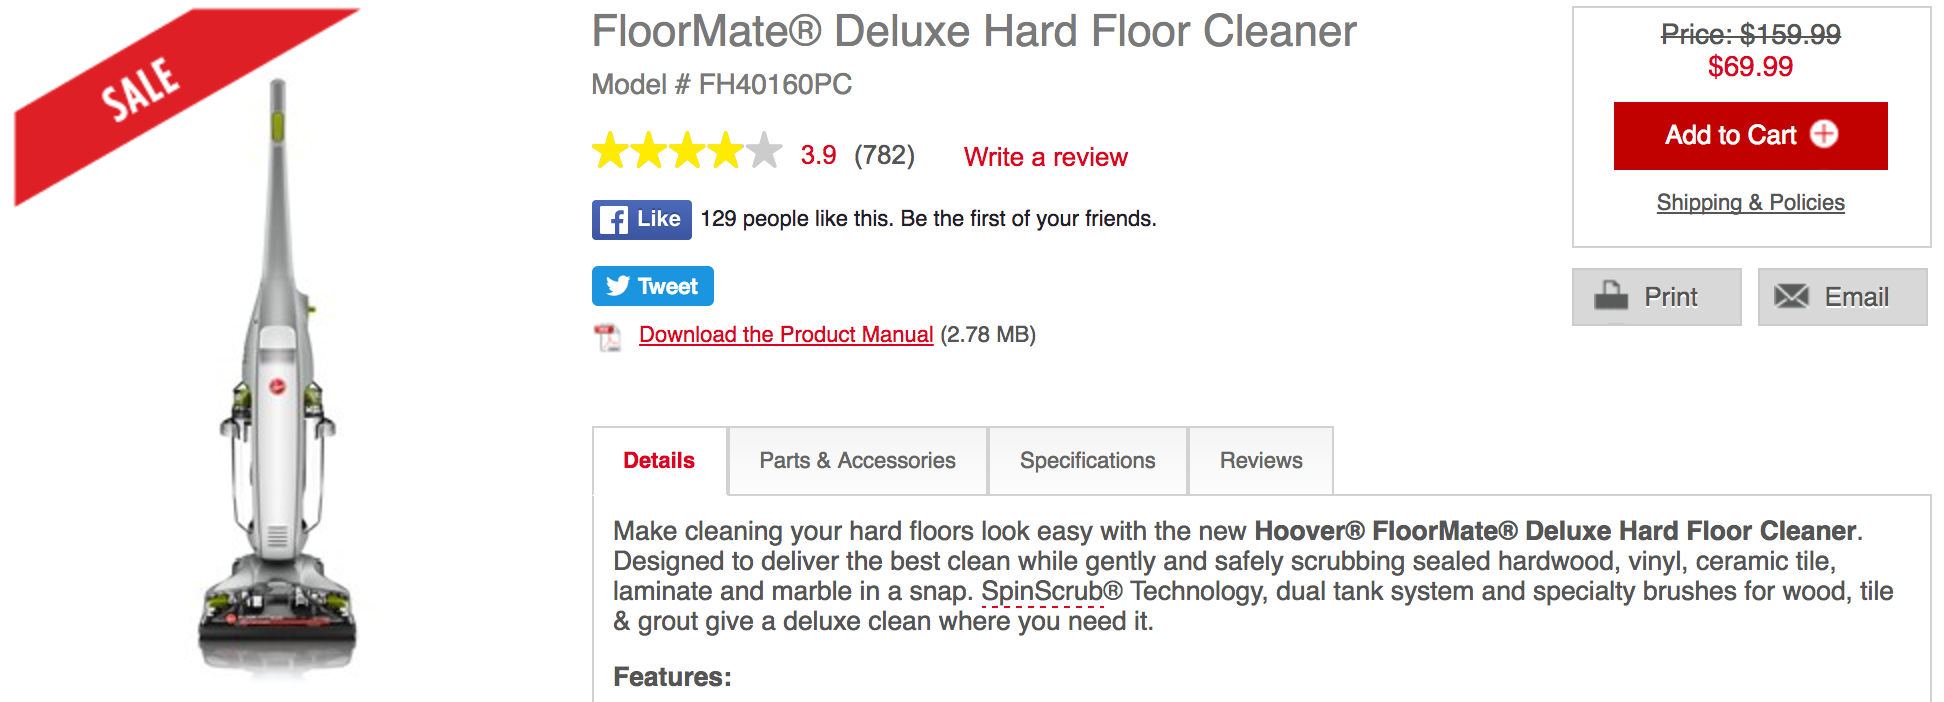 hoover-floormate-deluxe-hard-floor-cleaner-fh40160pc-2